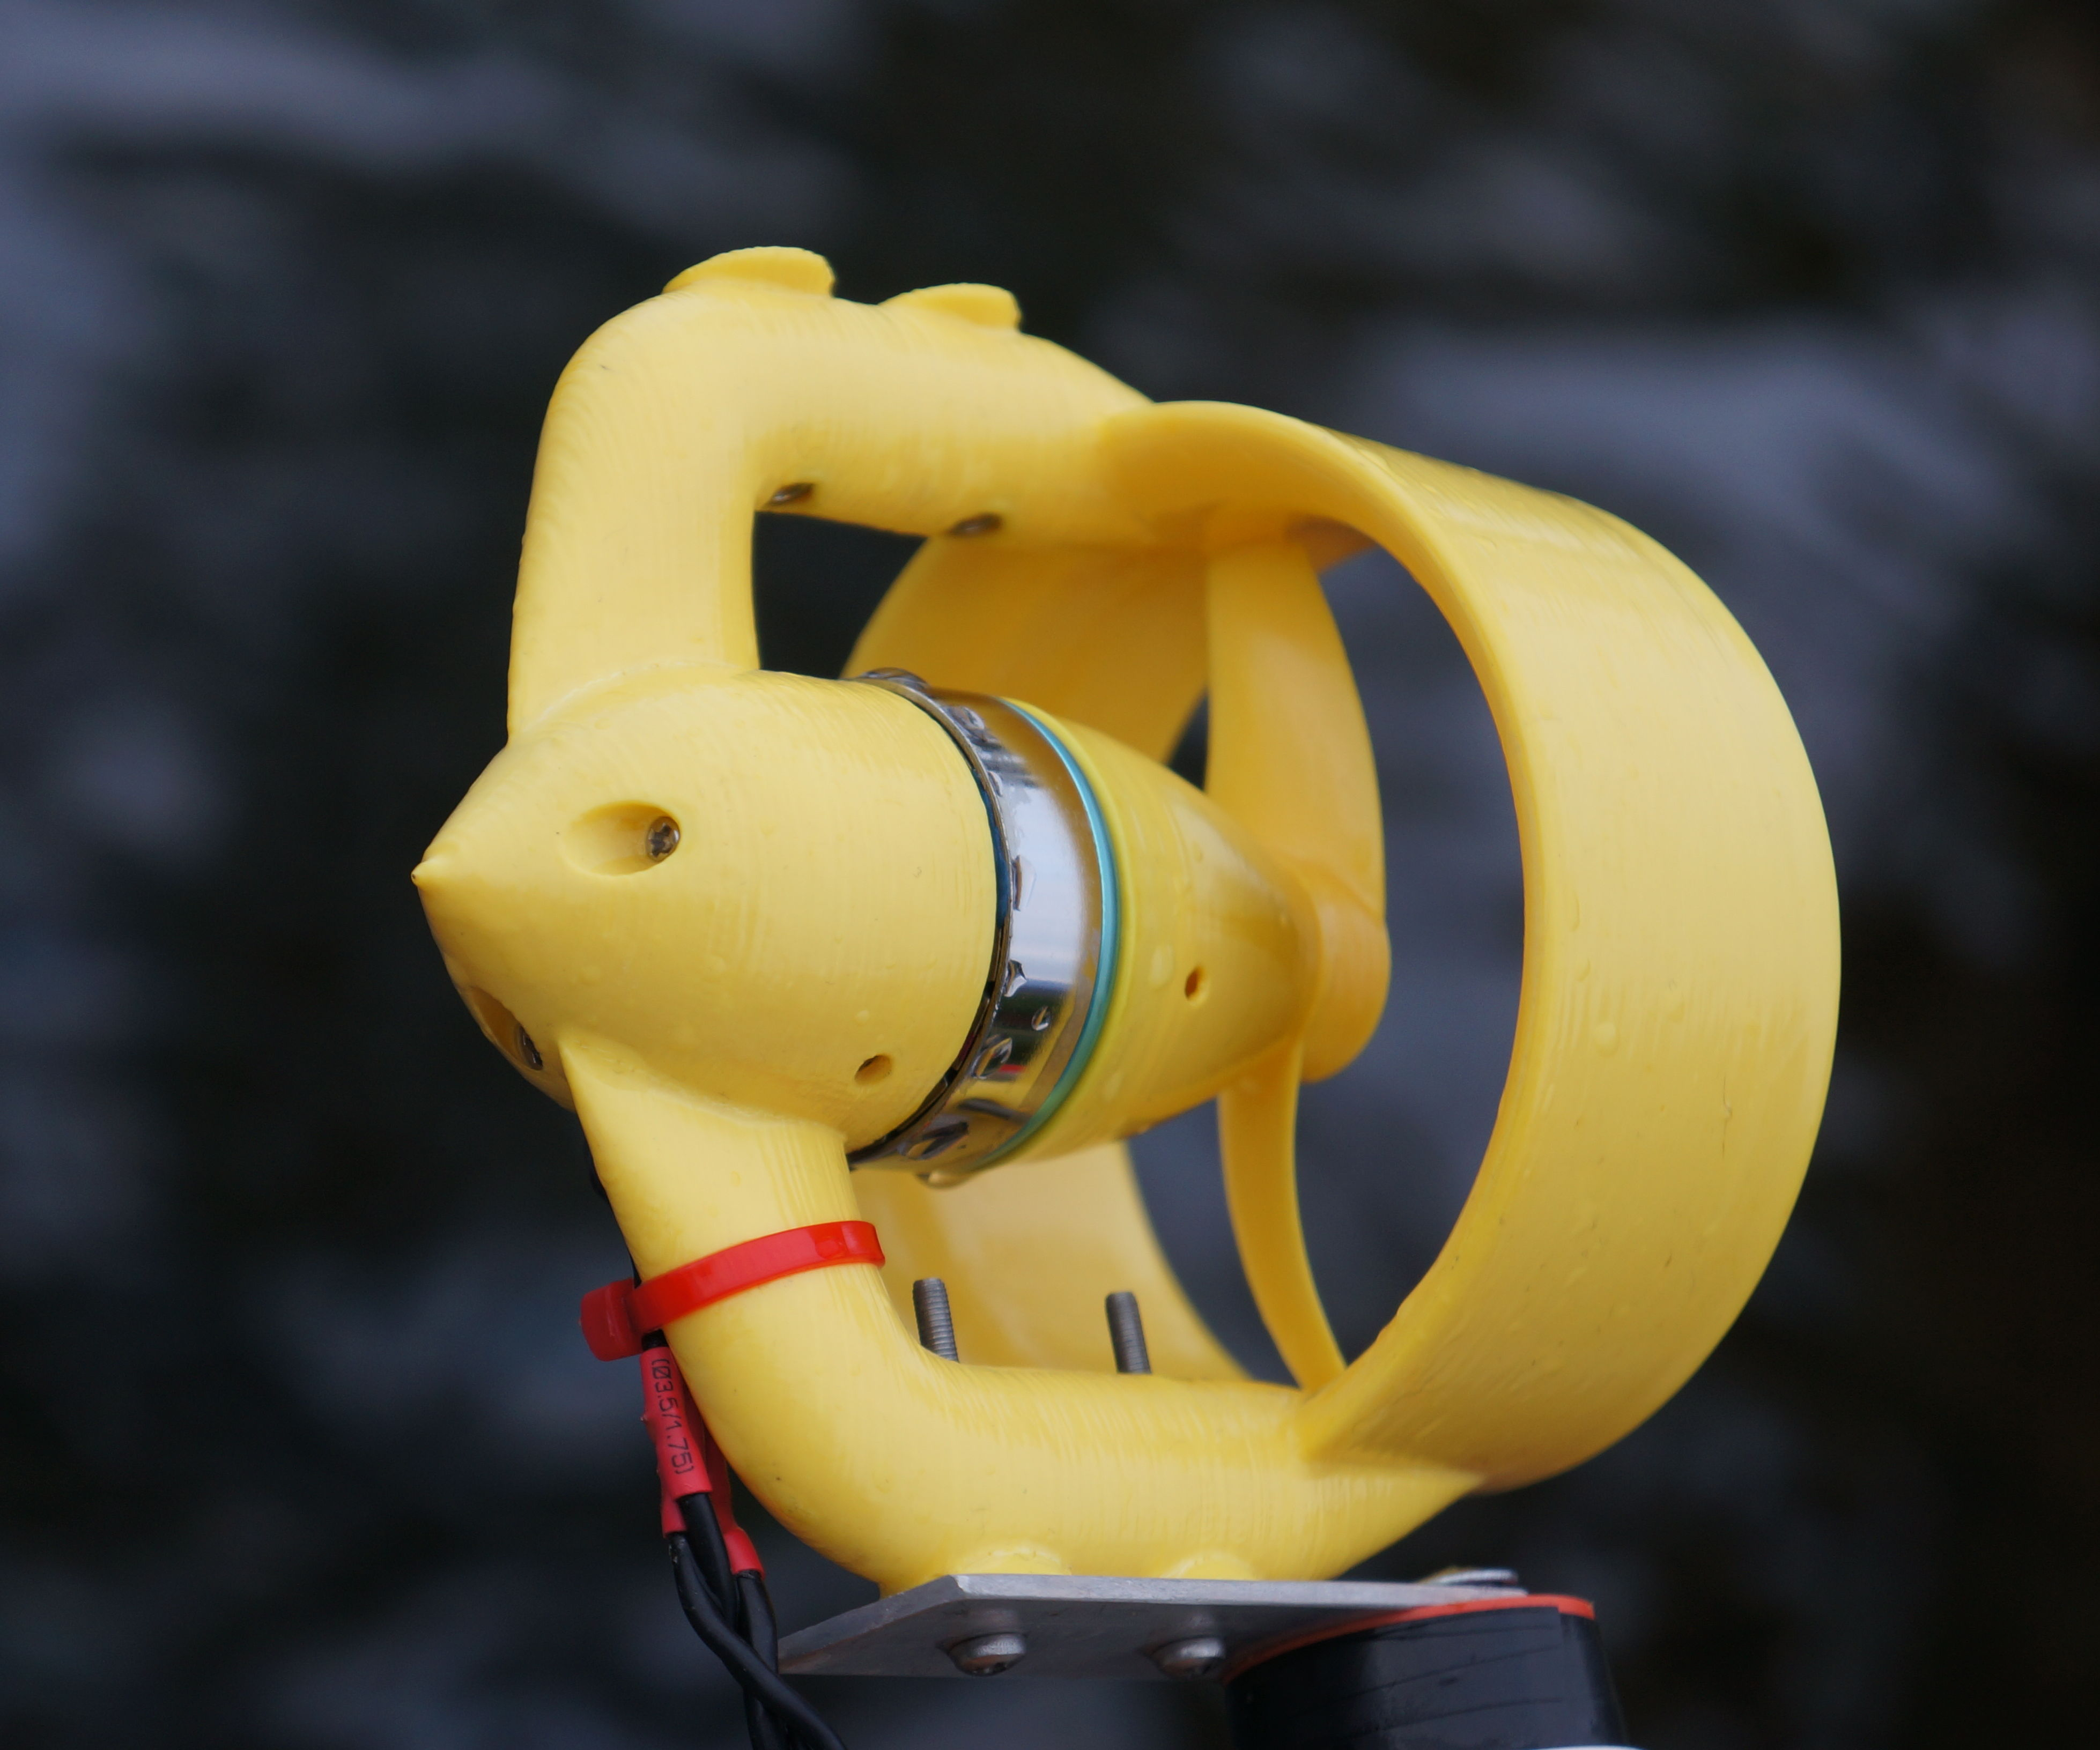 ROV Thruster 10,5 Lbs From DT700 Brushless Motor: 6 Steps (with